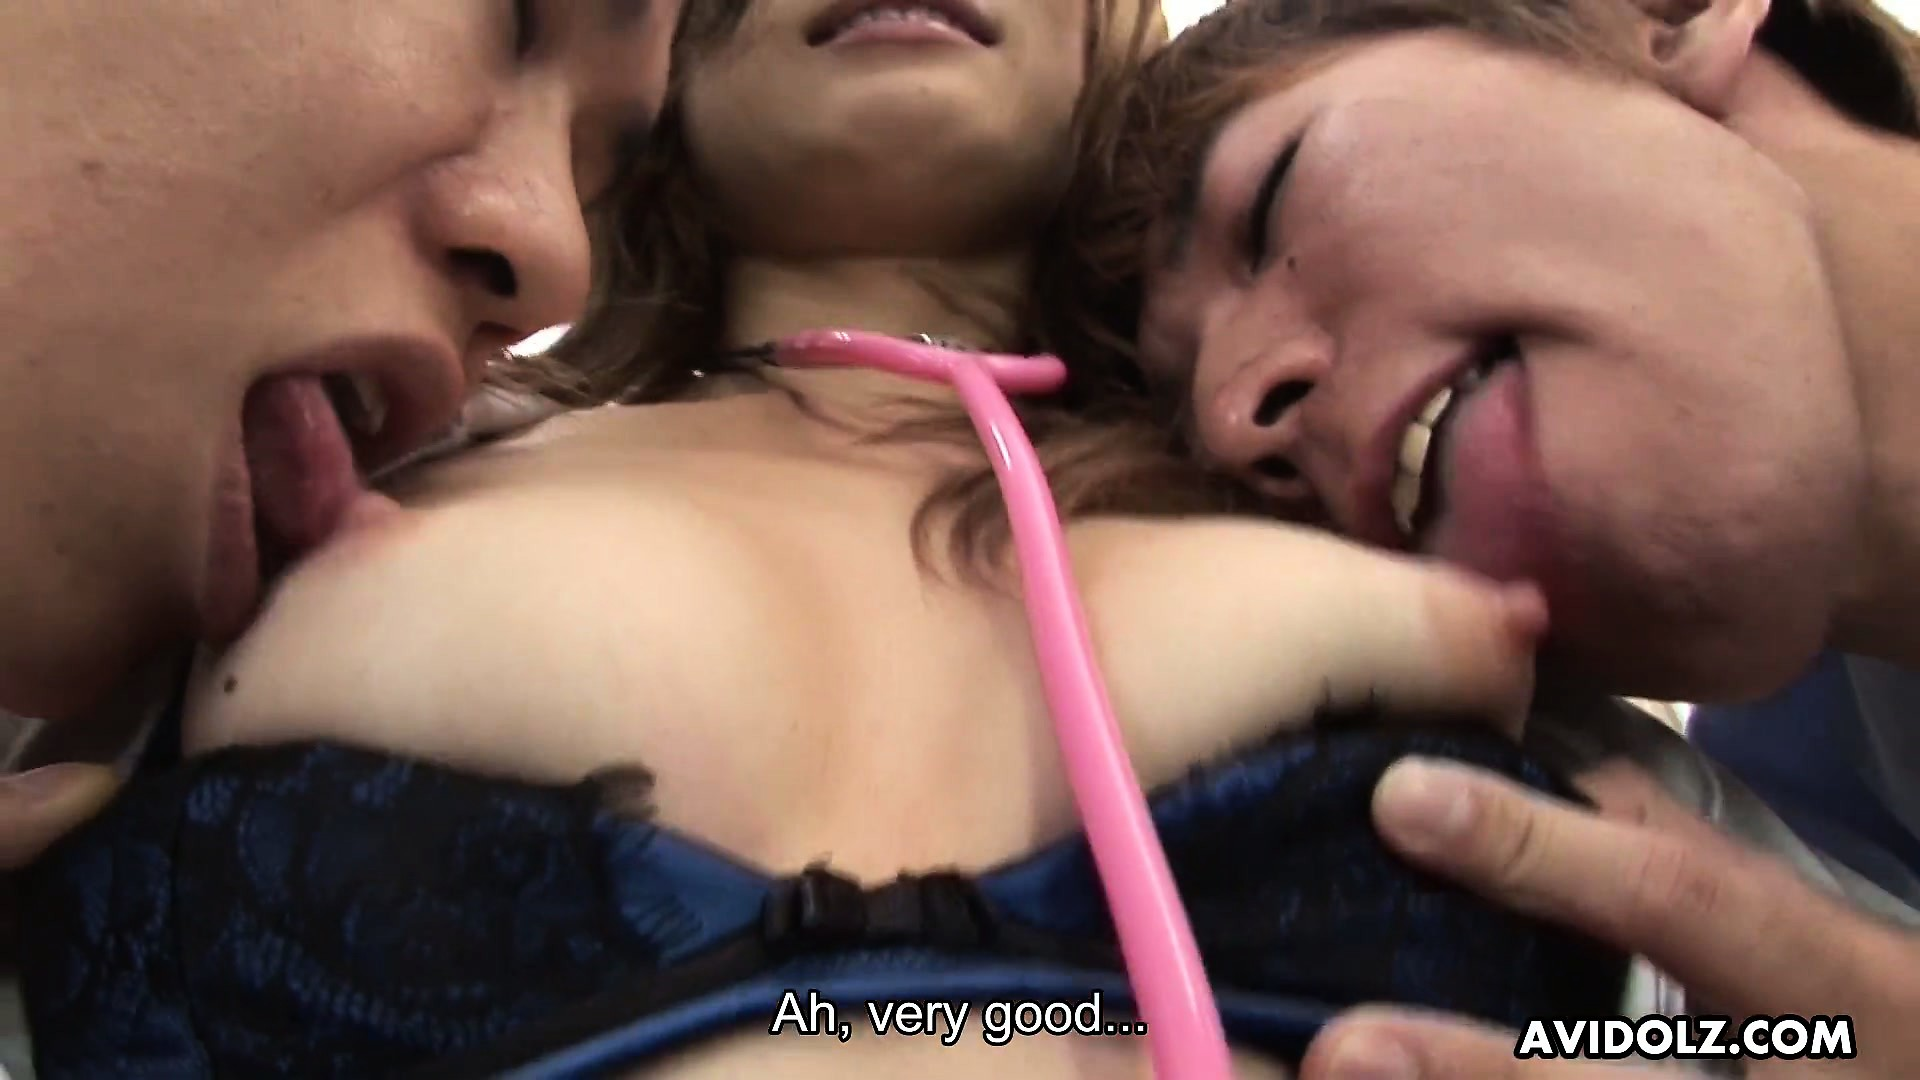 Porno Video of Attractive Asian Nurse With Tiny Tits Has Two Guys Ready To Fulfill Her Desires